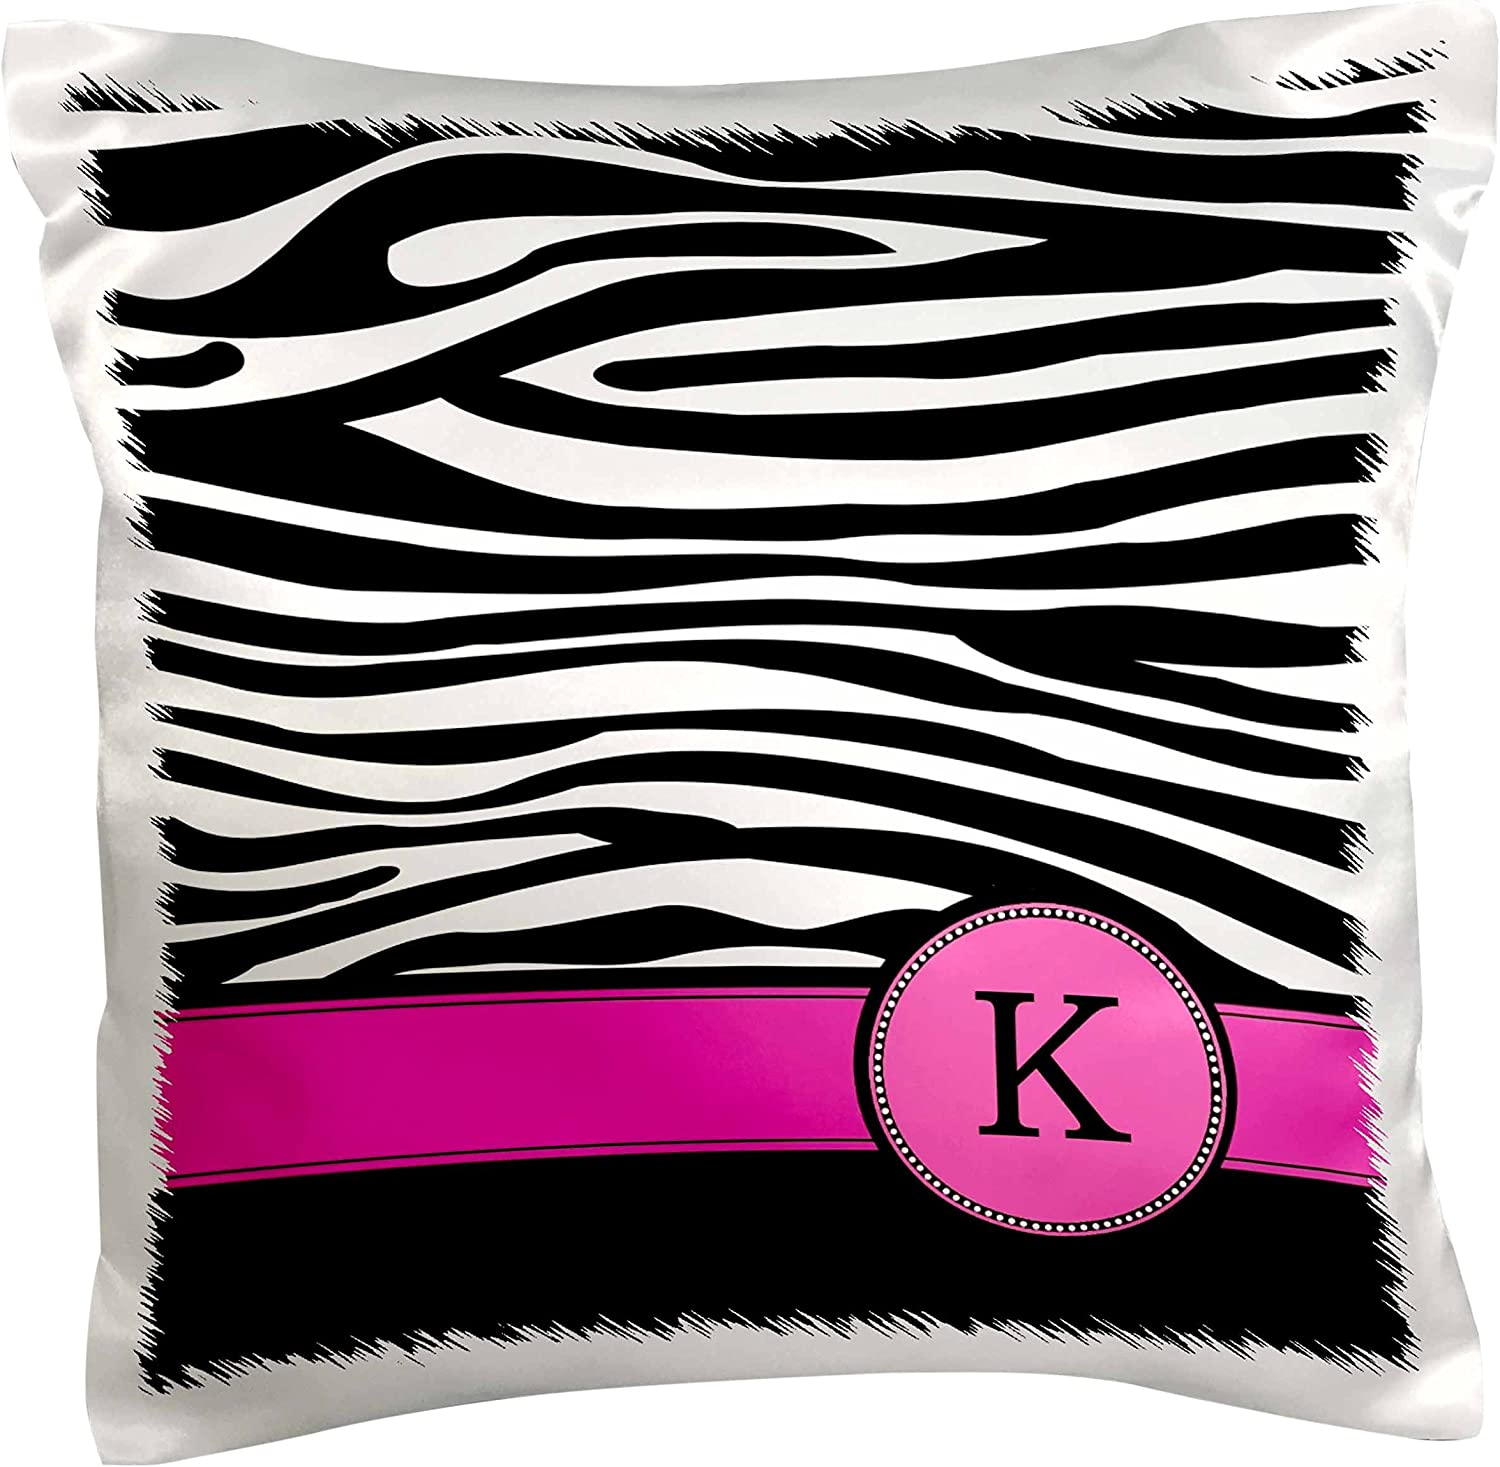 Amazon Com 3drose Pc 154282 1 Letter K Monogrammed Black And White Zebra Stripes Animal Print With Hot Pink Personalized Initial Pillow Case 16 X 16 Arts Crafts Sewing